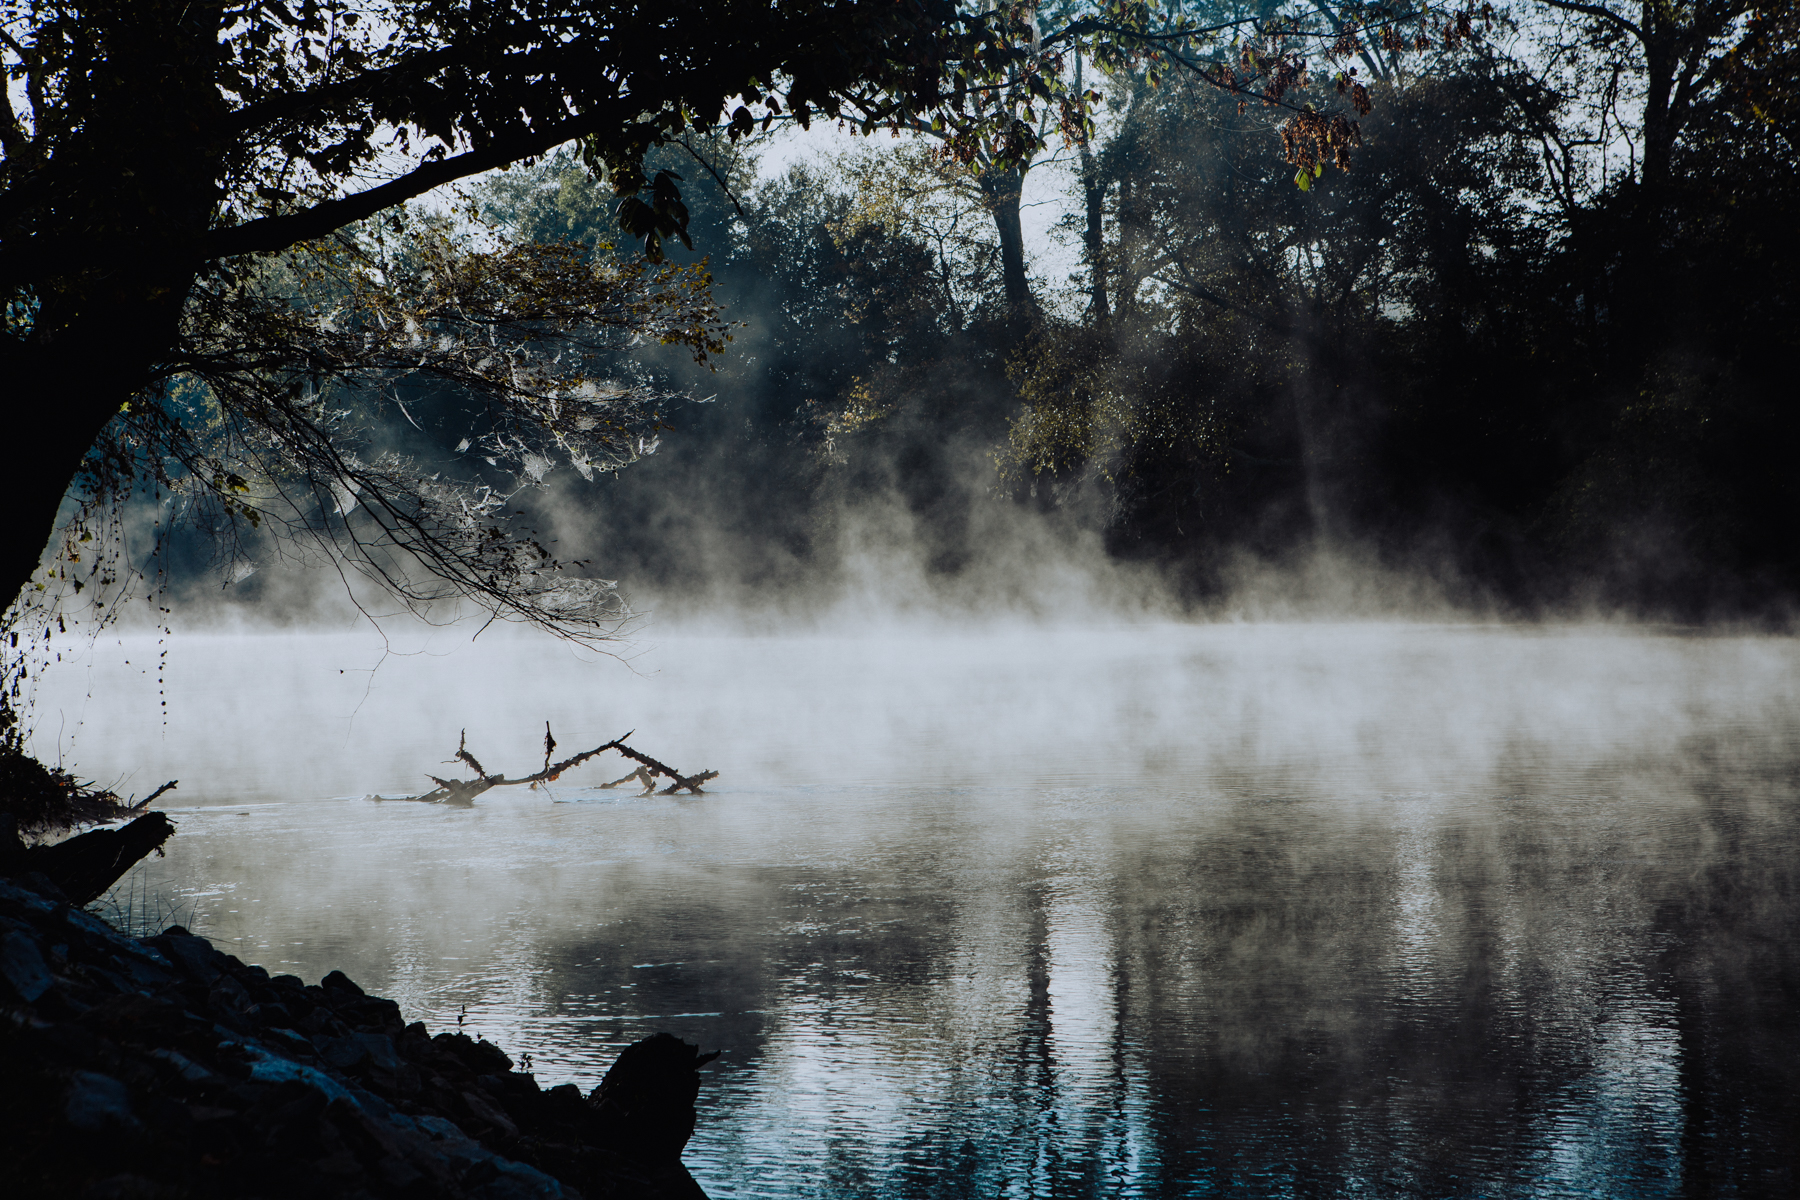 Morning mist on the Hiwassee River